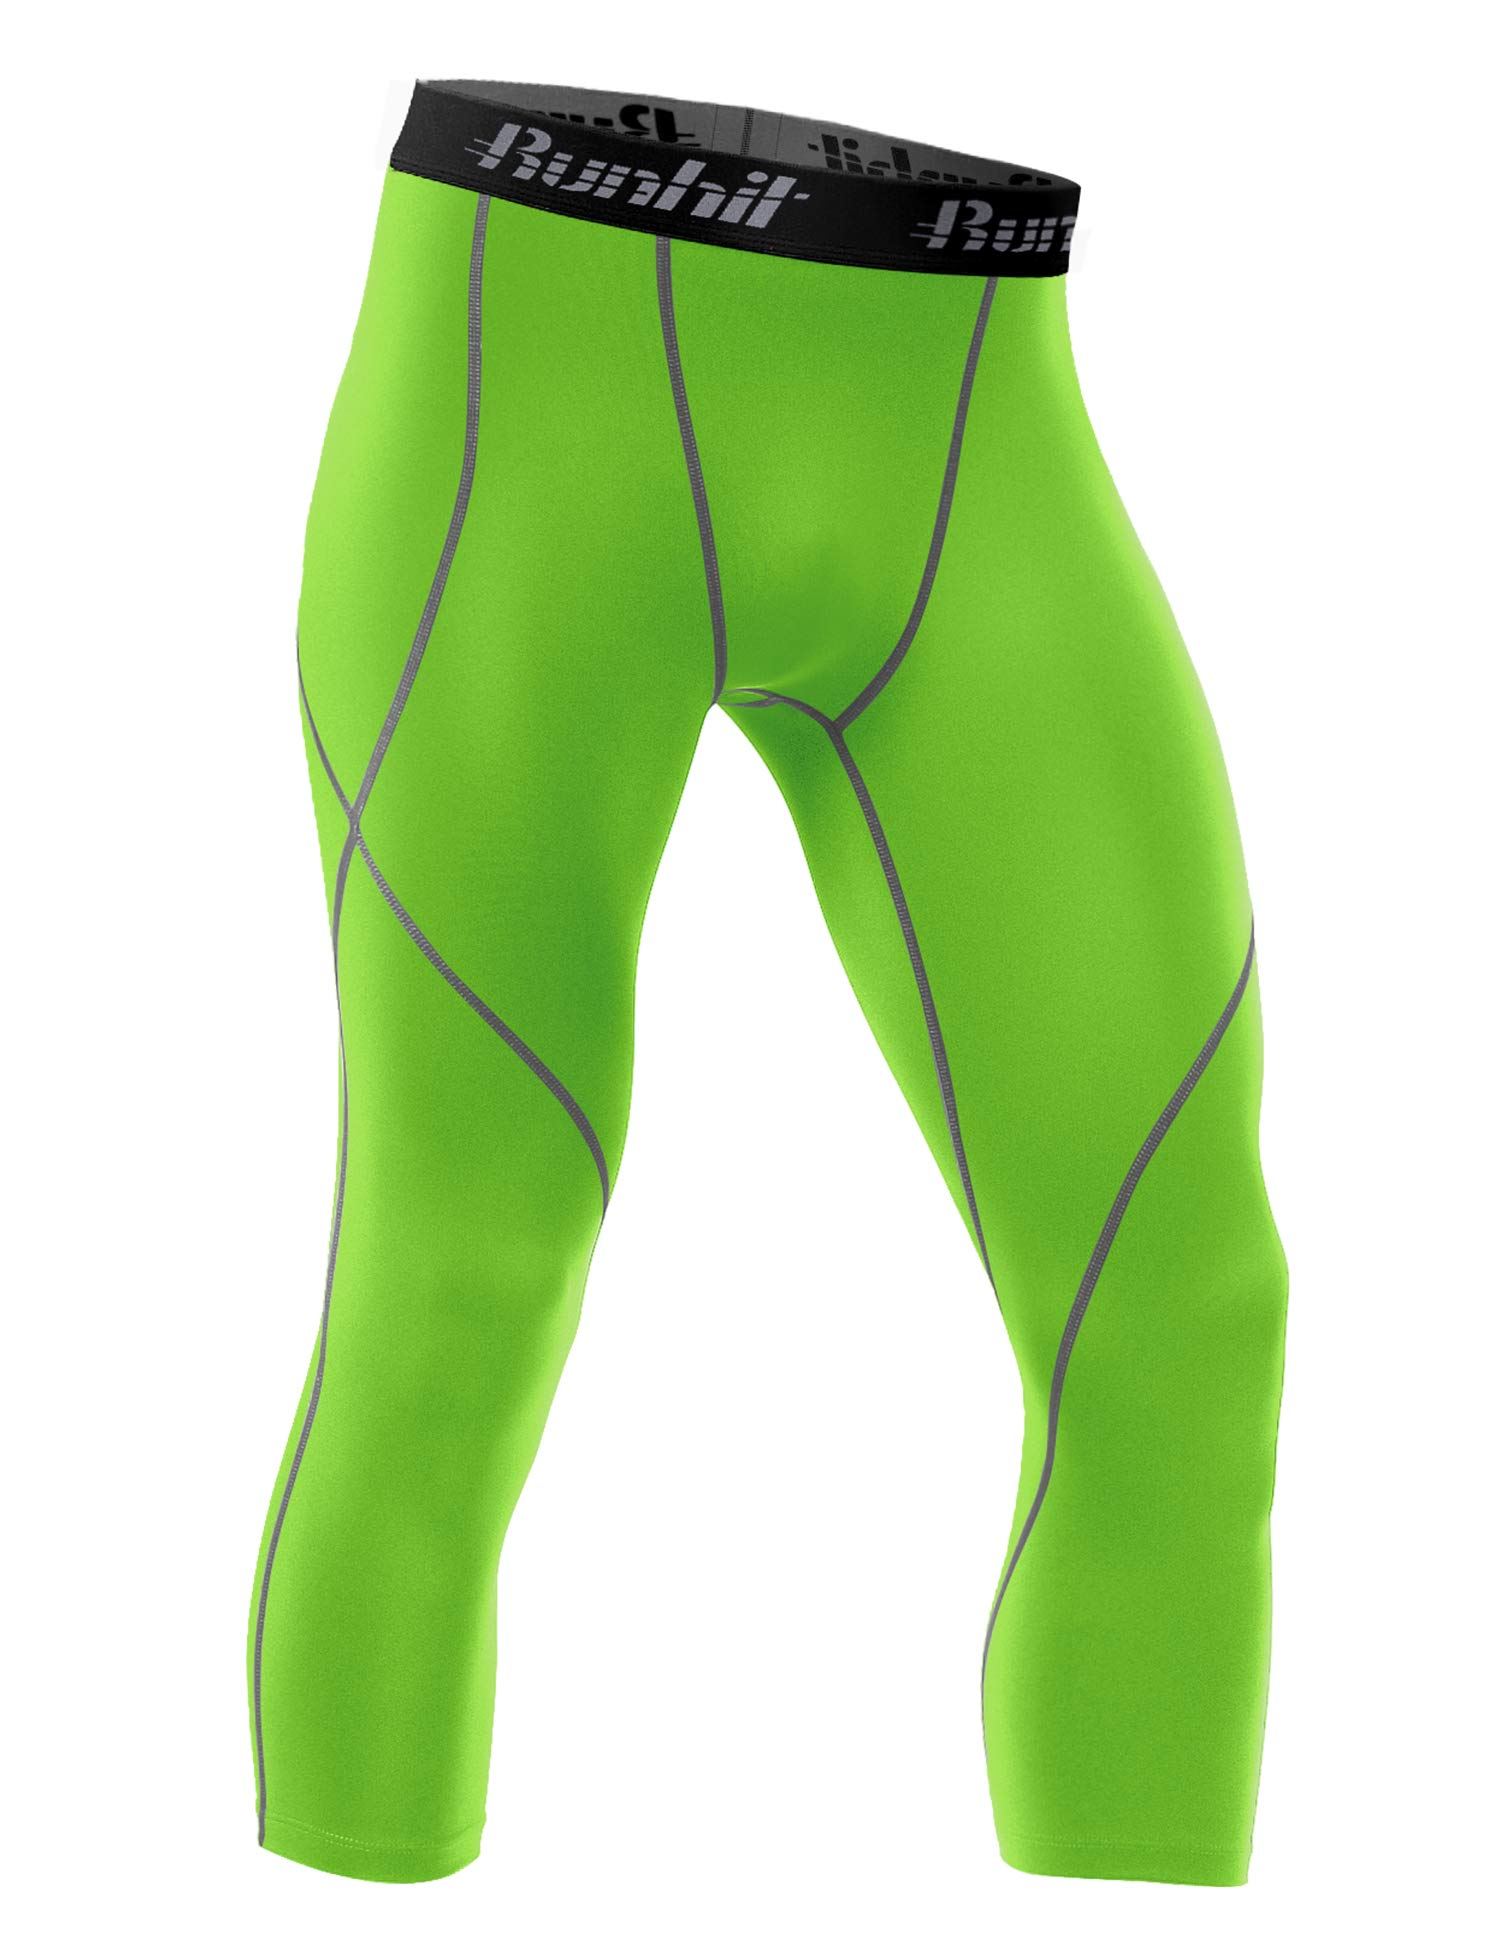 Runhit Mens 3/4 Compression Leggings Pants Capri Shorts Baselayer Cool Dry Sport Tights Fluorescent Green by Runhit